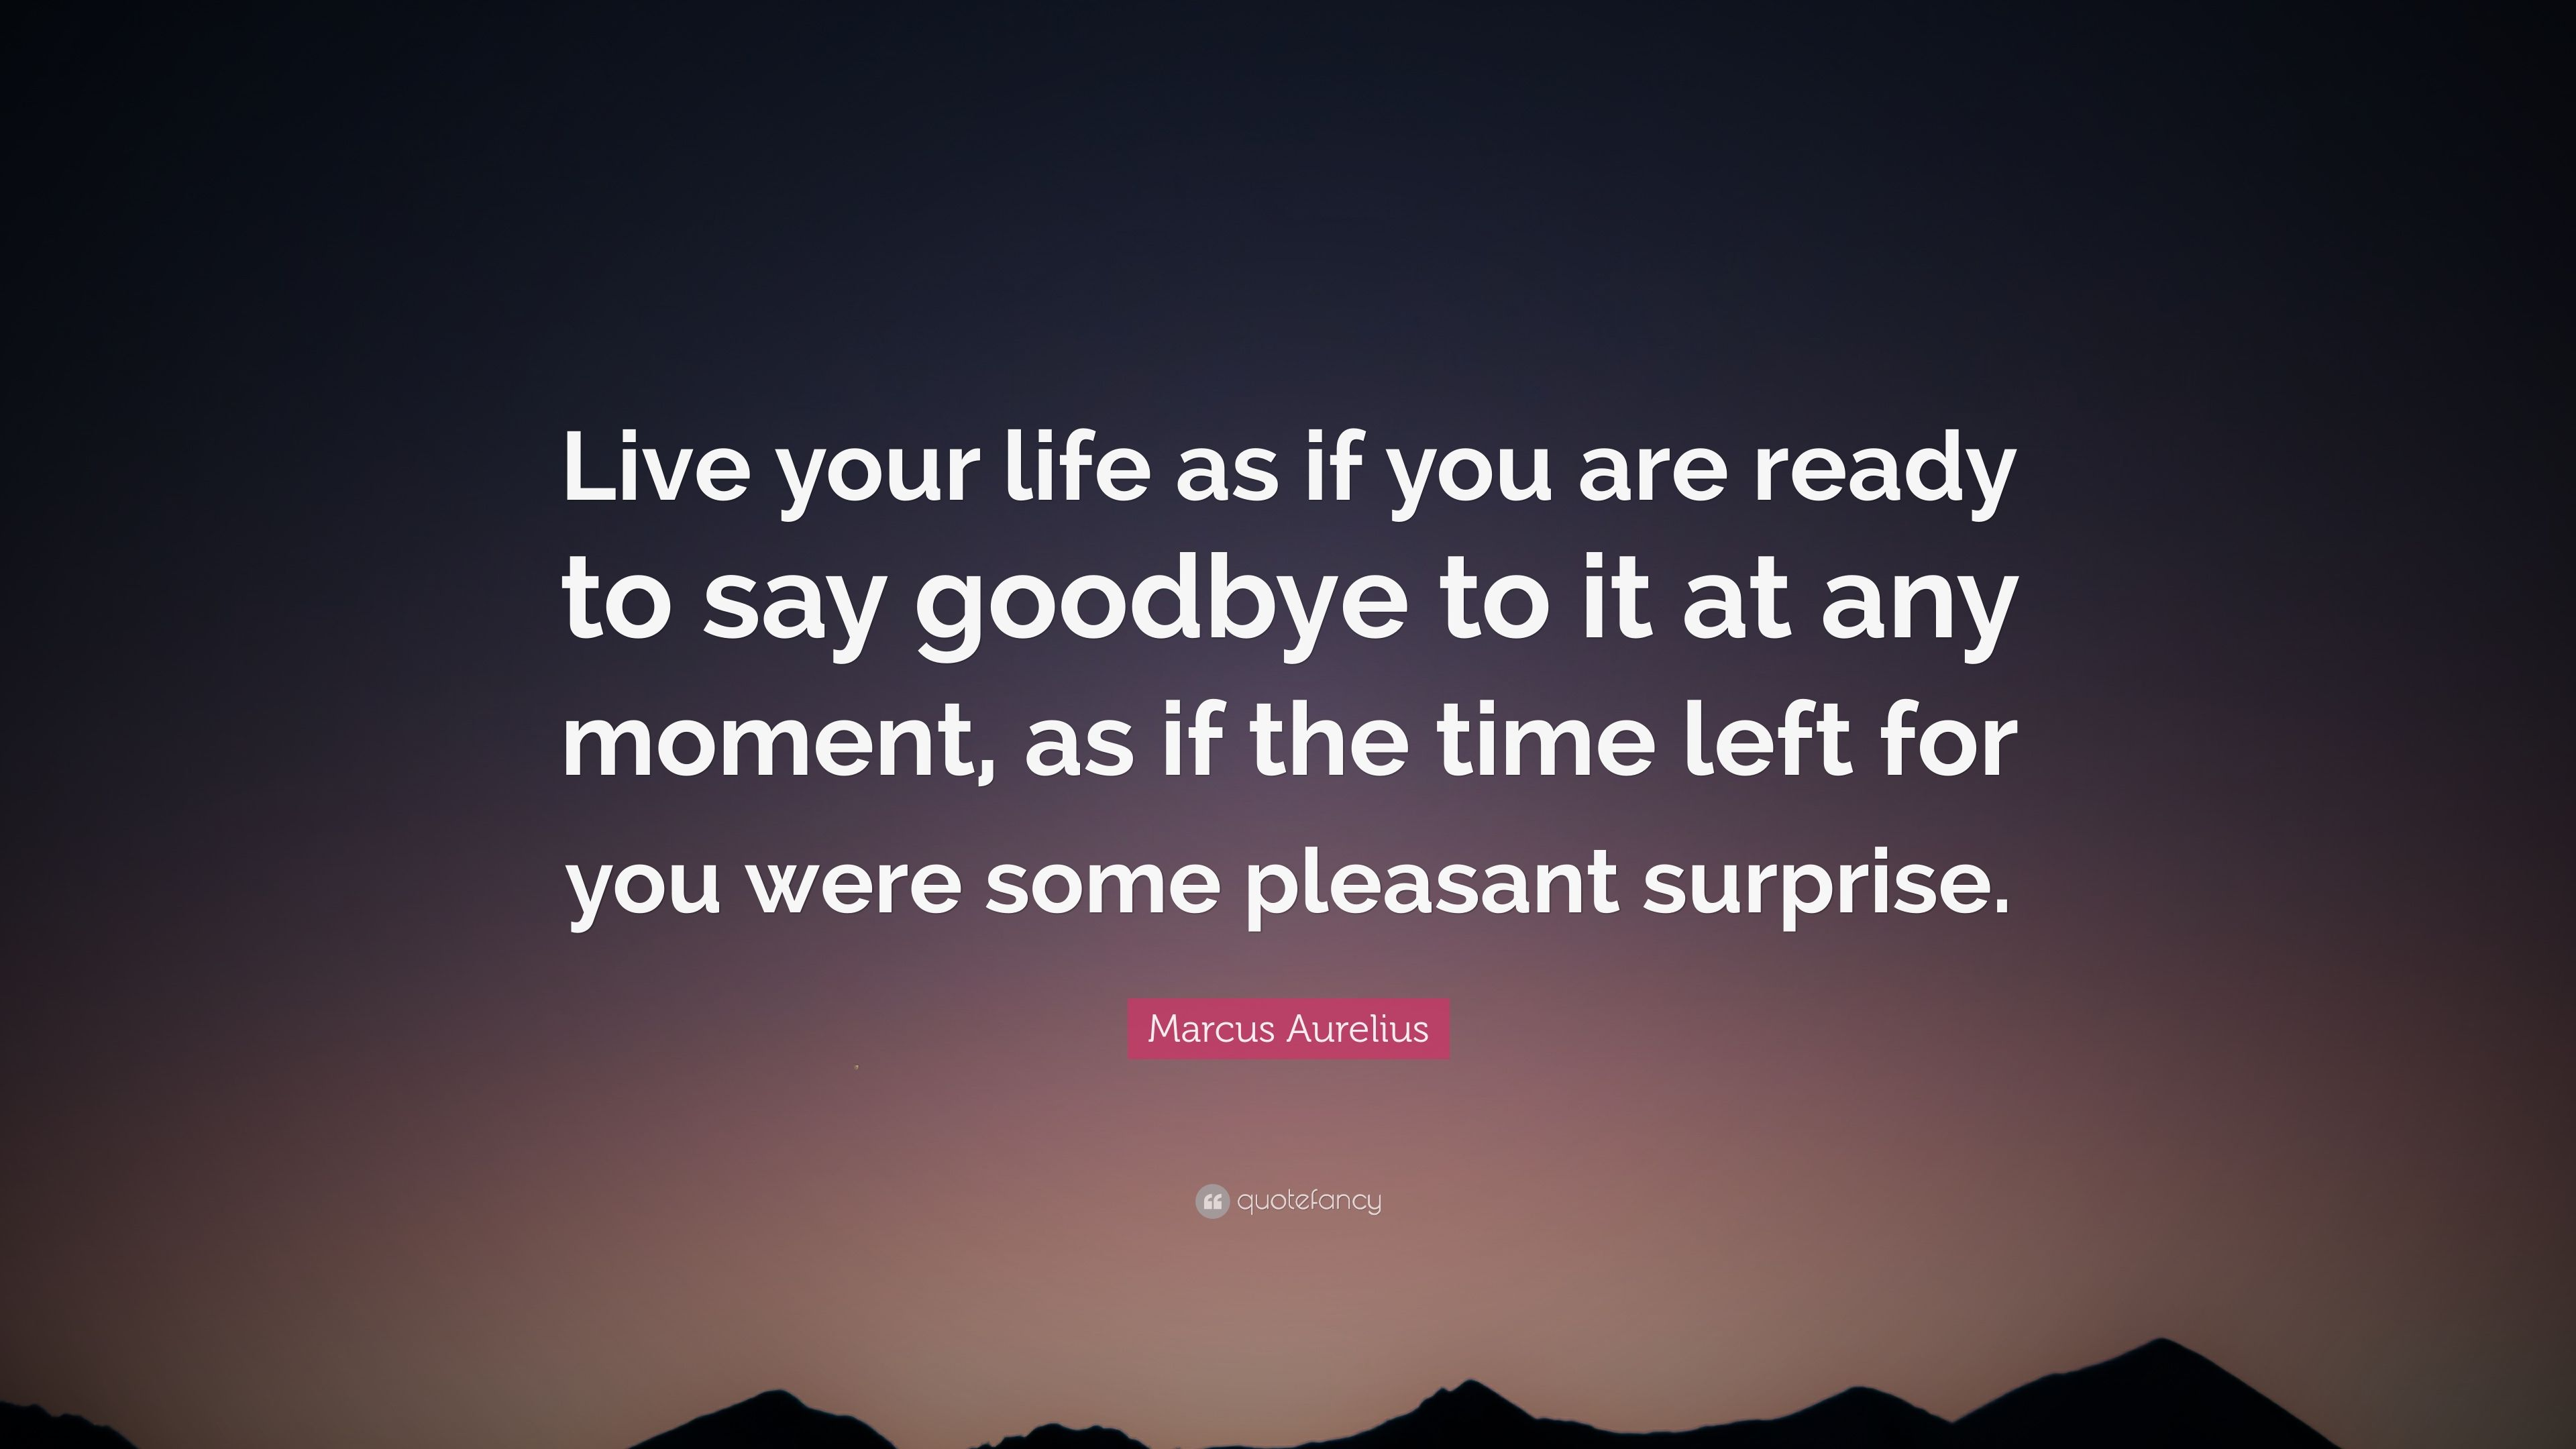 Great Marcus Aurelius Quote: U201cLive Your Life As If You Are Ready To Say Goodbye